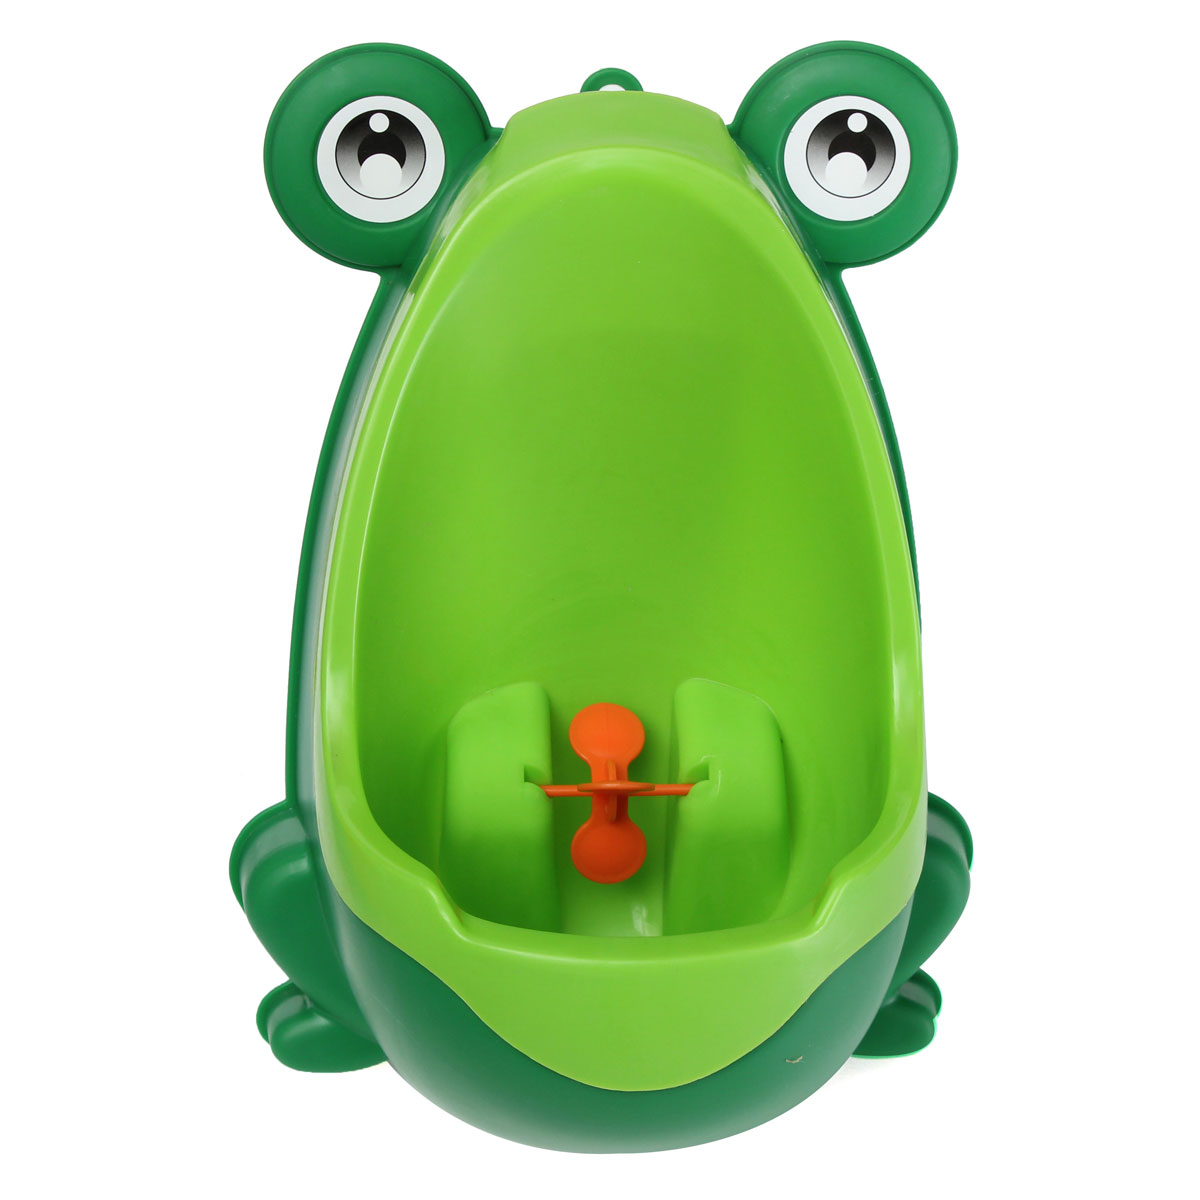 Arzil Frog Potty Toilet Urinal Trainer Training for Little Boys Kids Children Toddler Baby with Funny Aiming... by Arzil